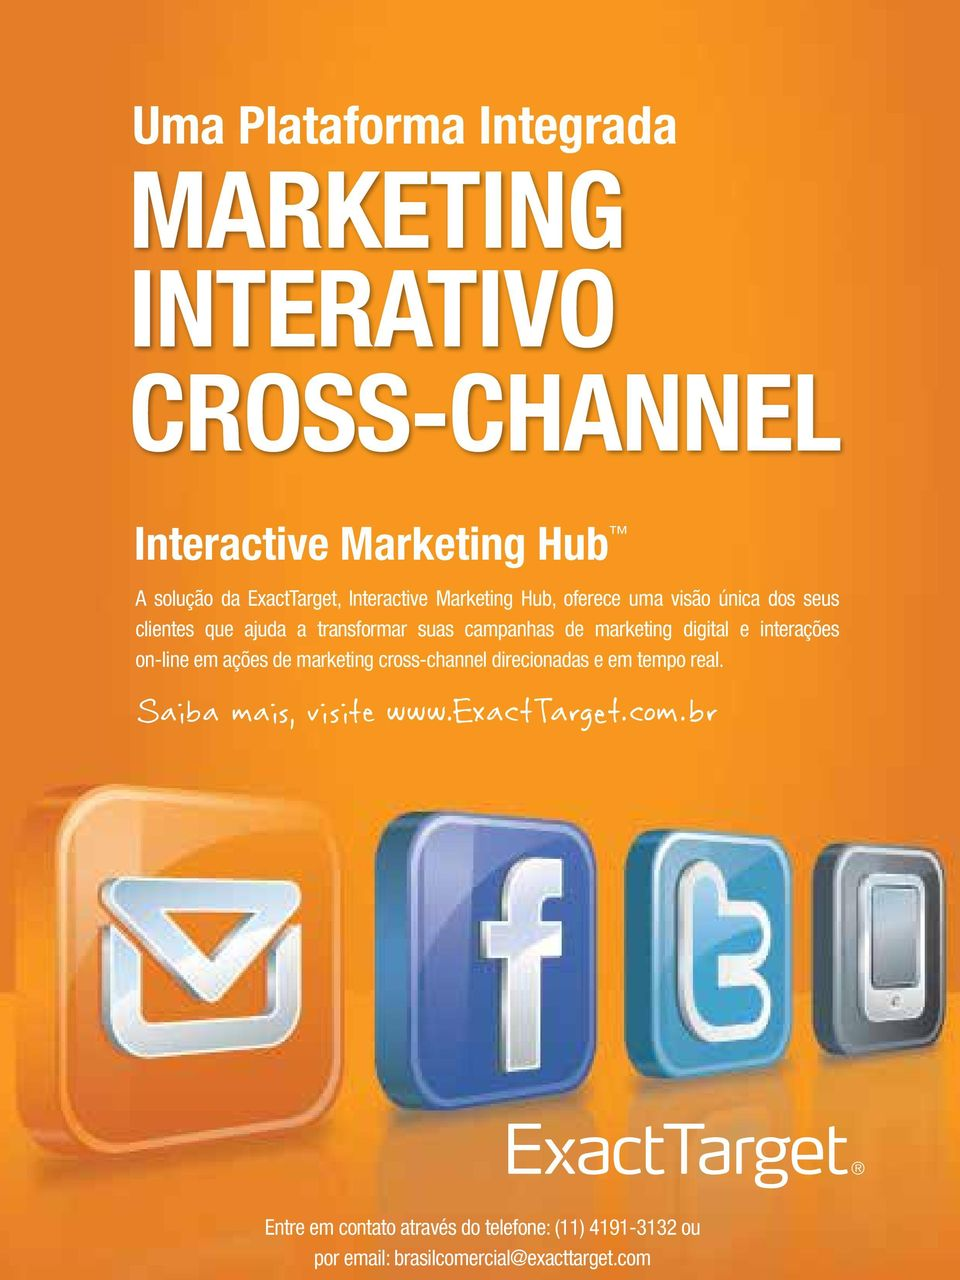 marketing digital e interações on-line em ações de marketing cross-channel direcionadas e em tempo real.